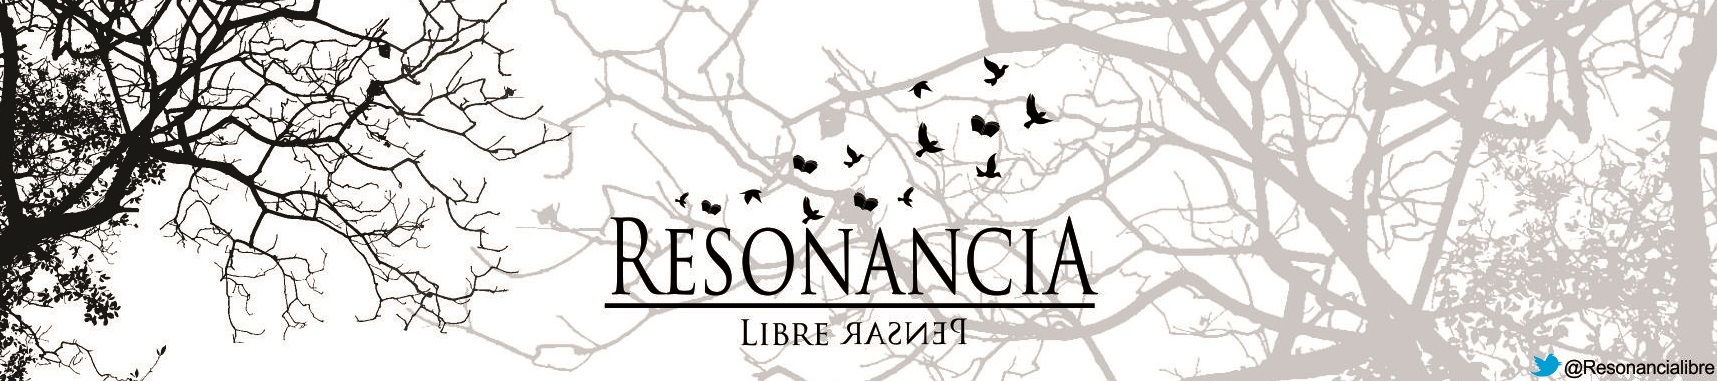 Resonancia Libre Pensar logo